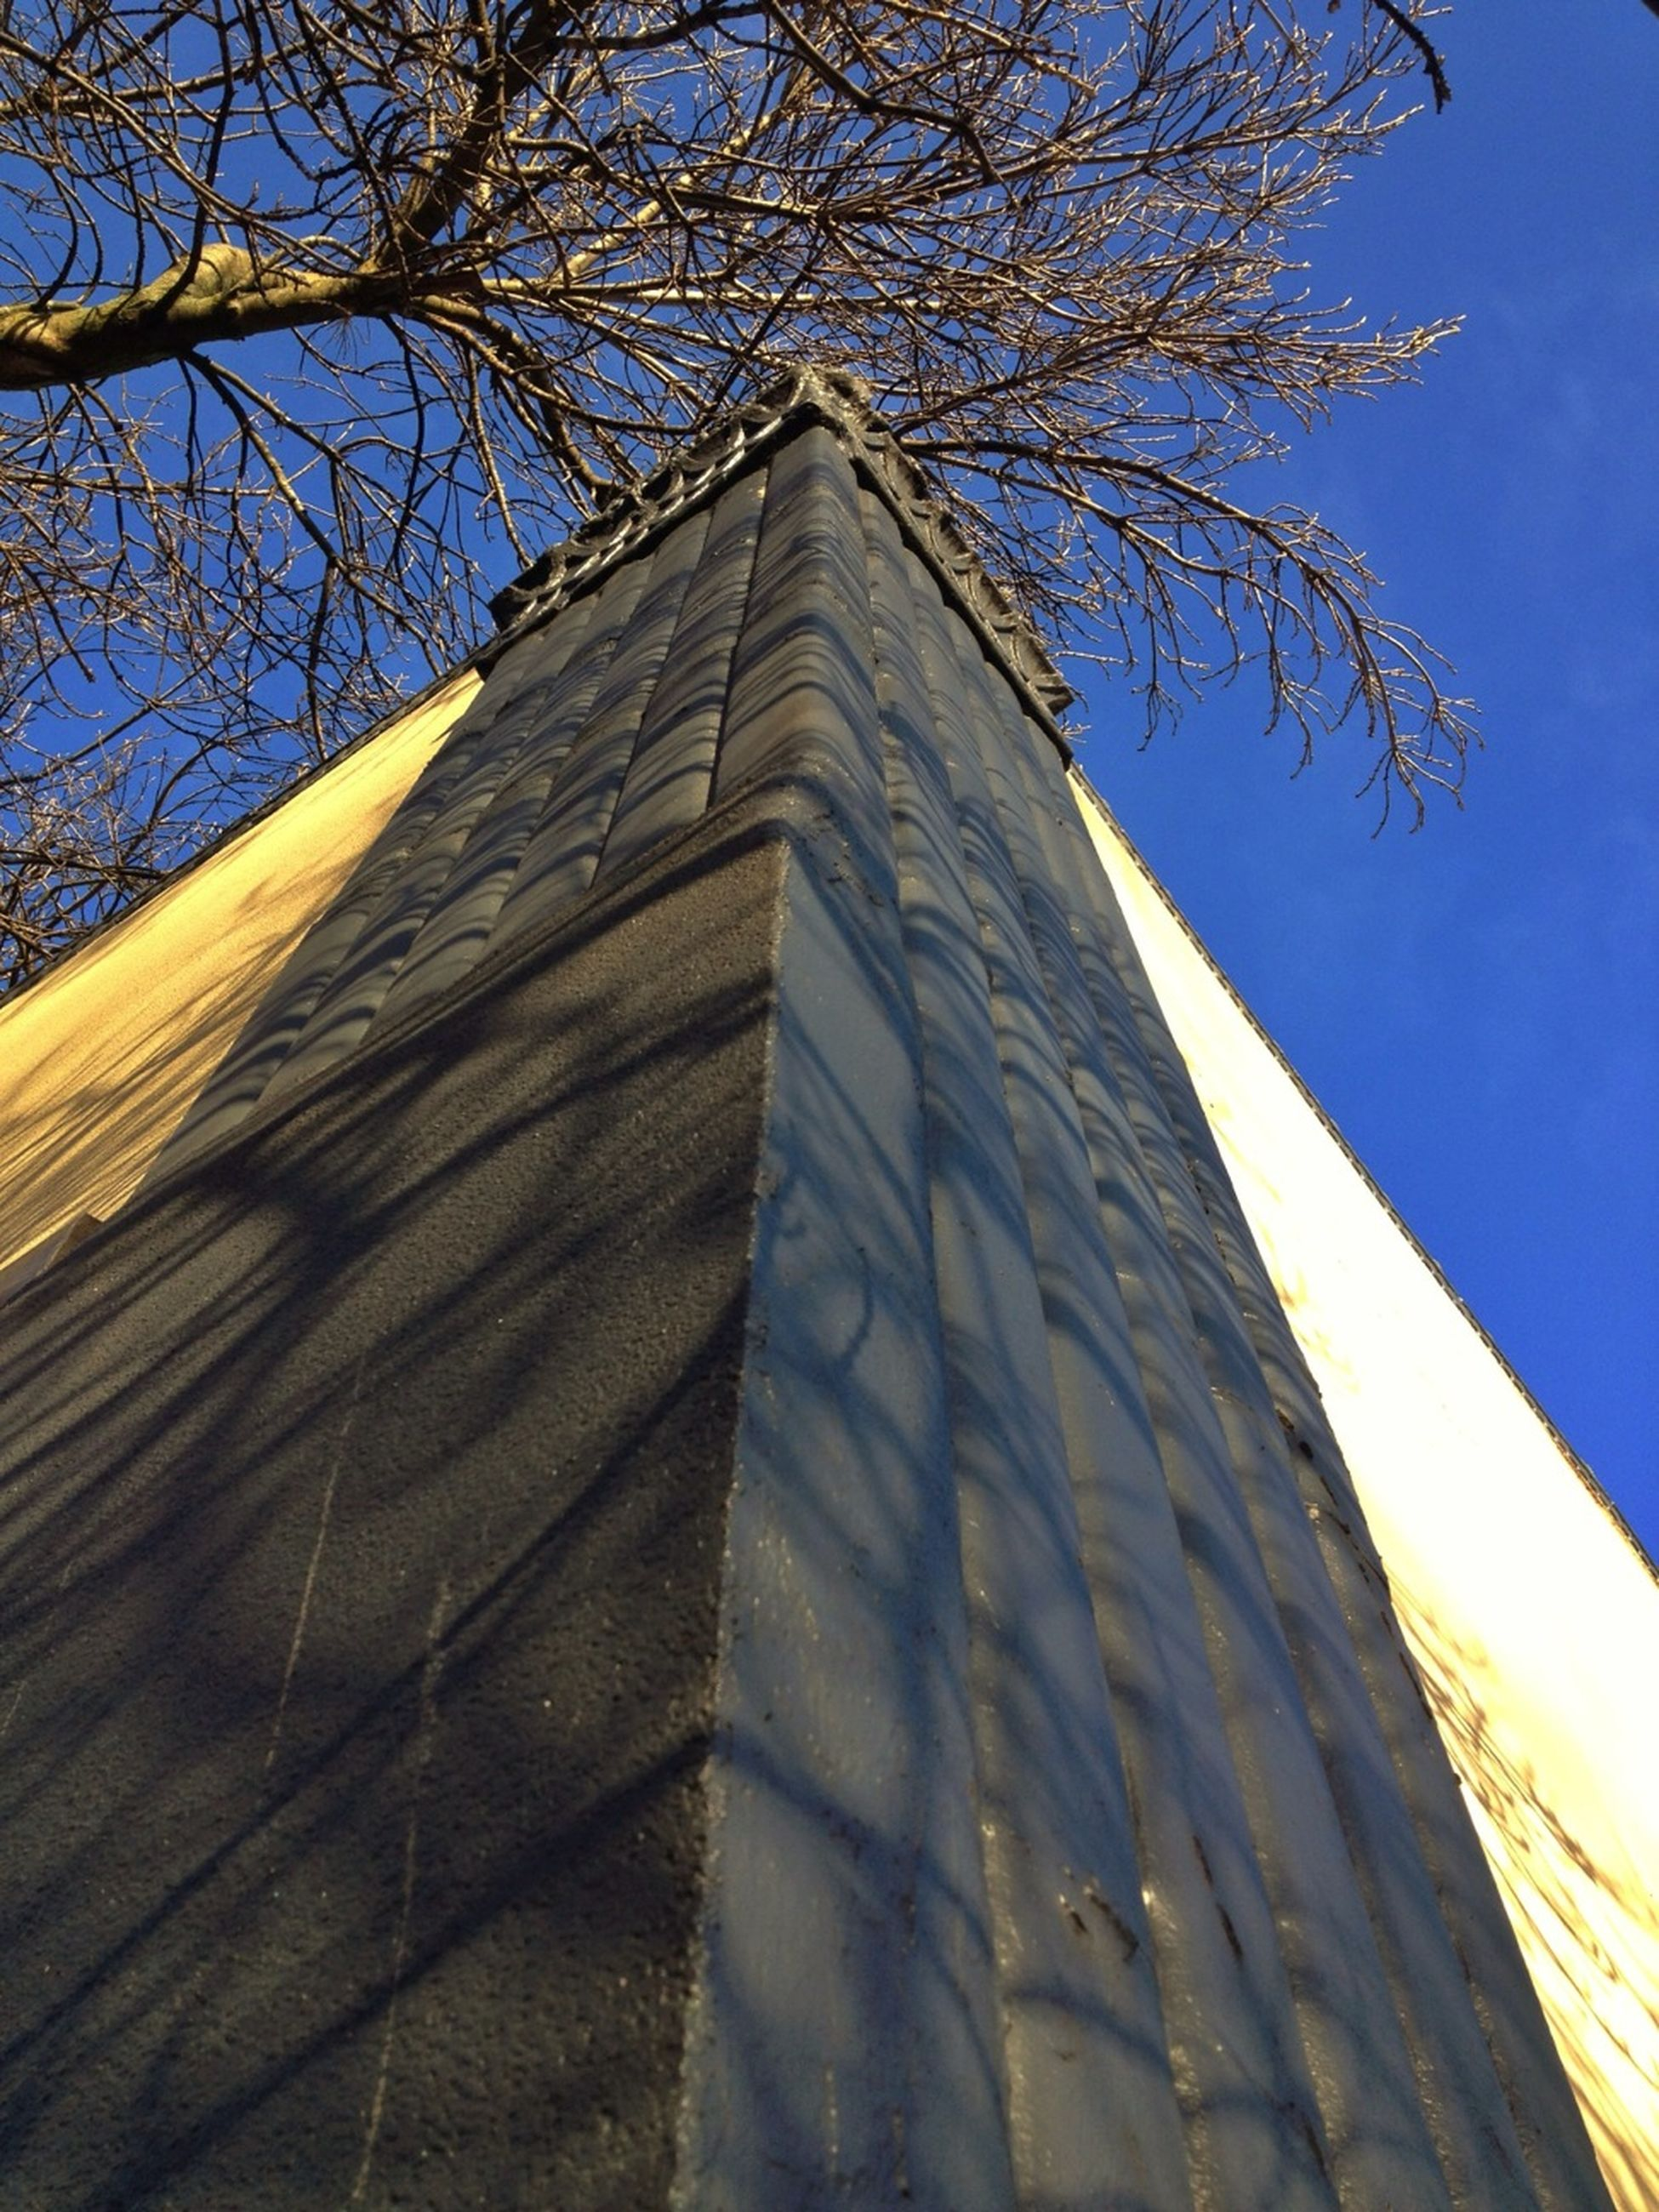 architecture, building exterior, built structure, low angle view, tree, branch, bare tree, clear sky, blue, sky, tower, tall - high, place of worship, sunlight, day, no people, outdoors, church, religion